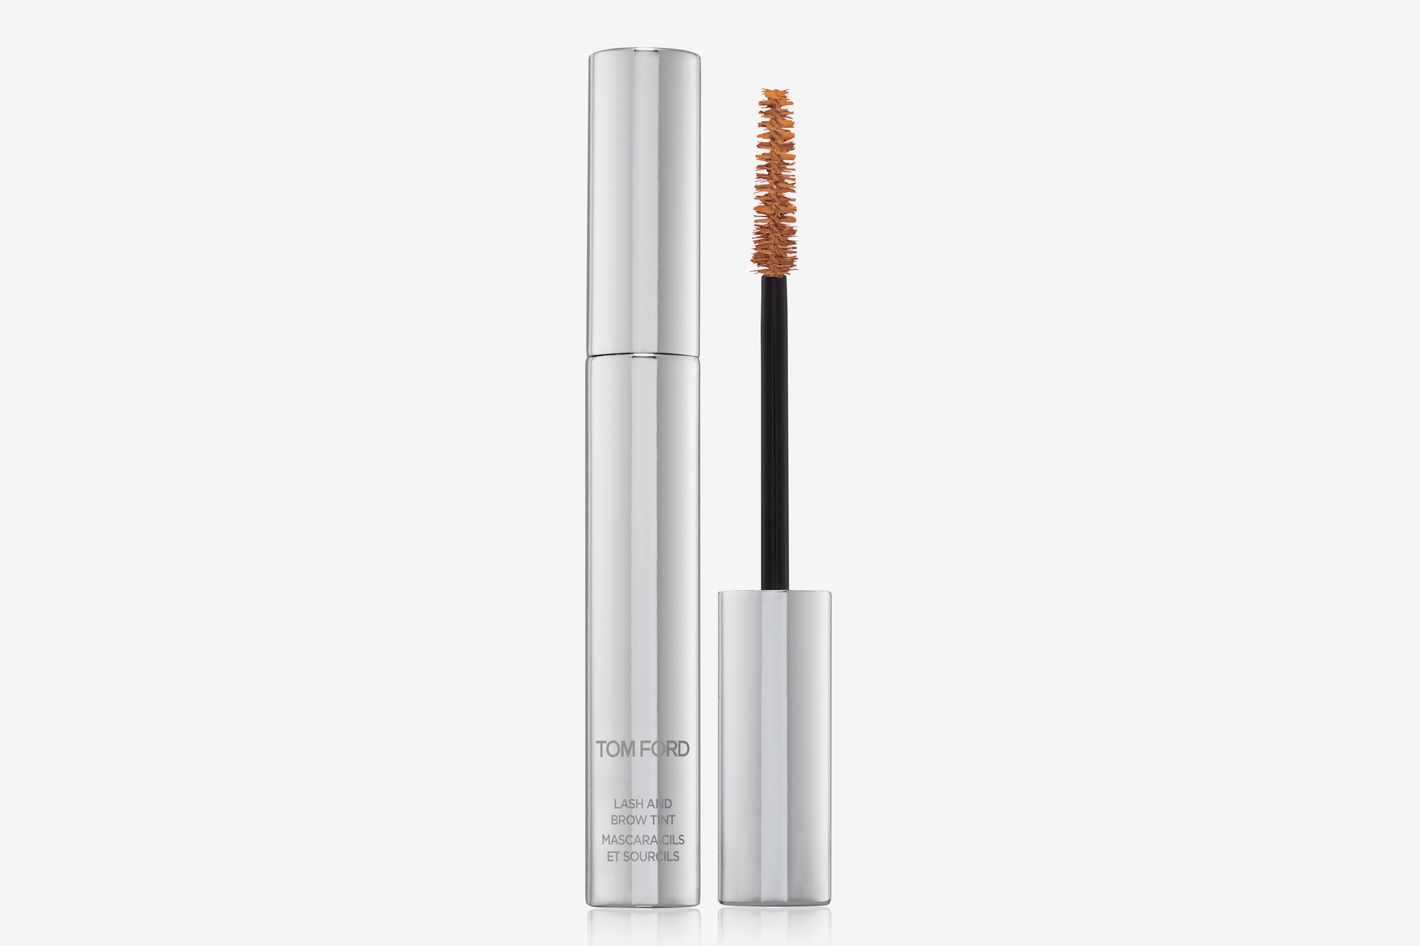 Lash and Brow Tint TFX24